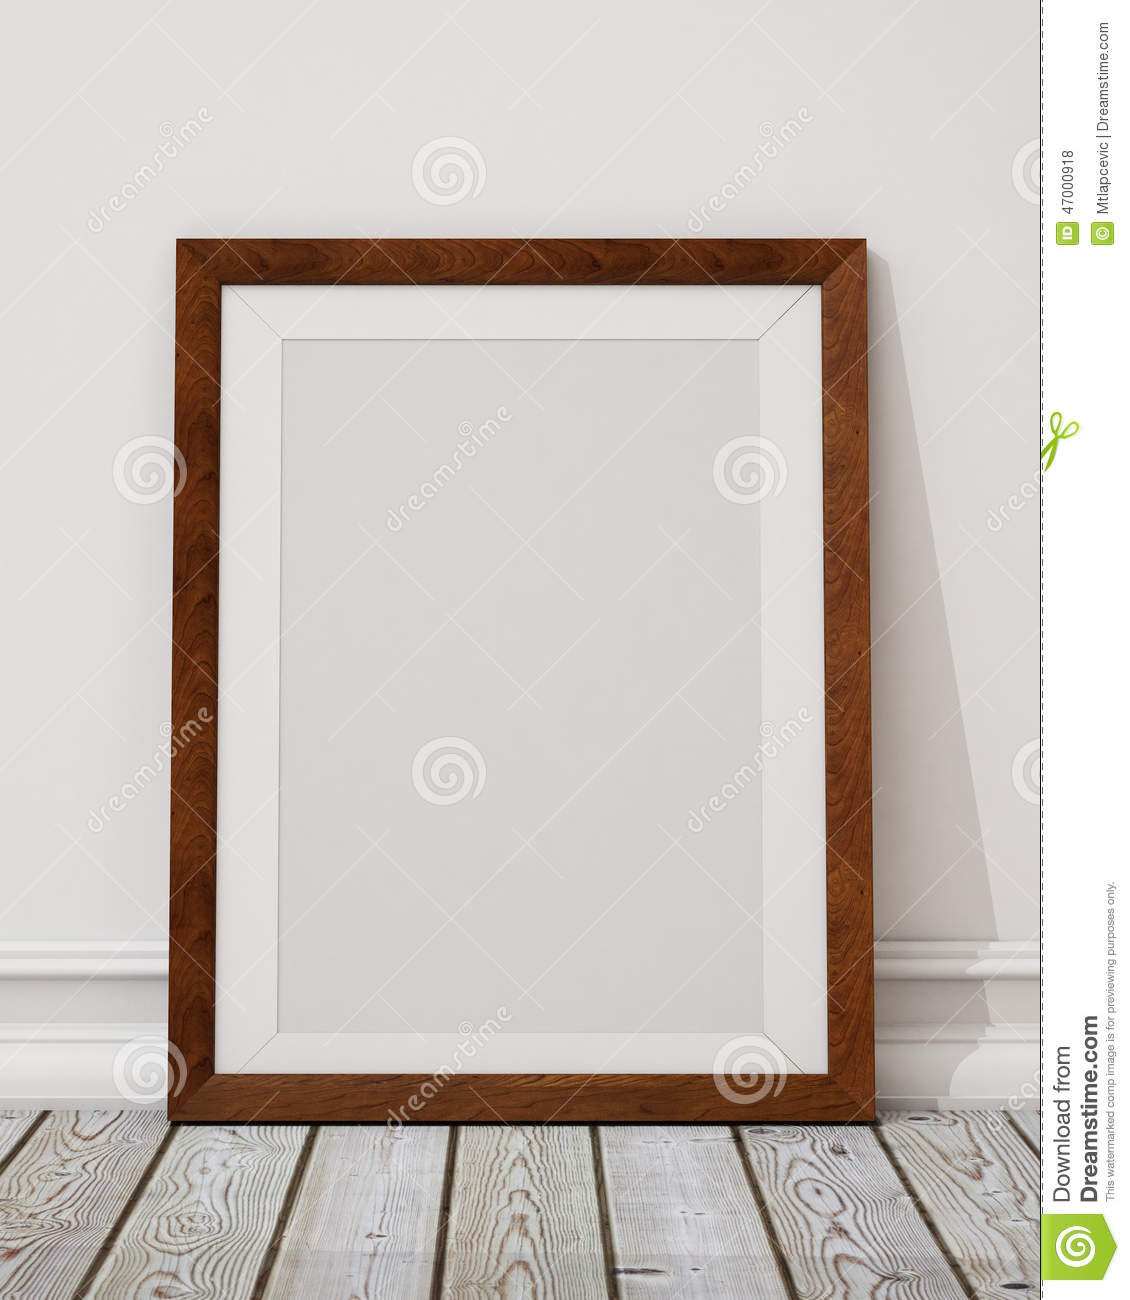 wood picture frame template - photo #26